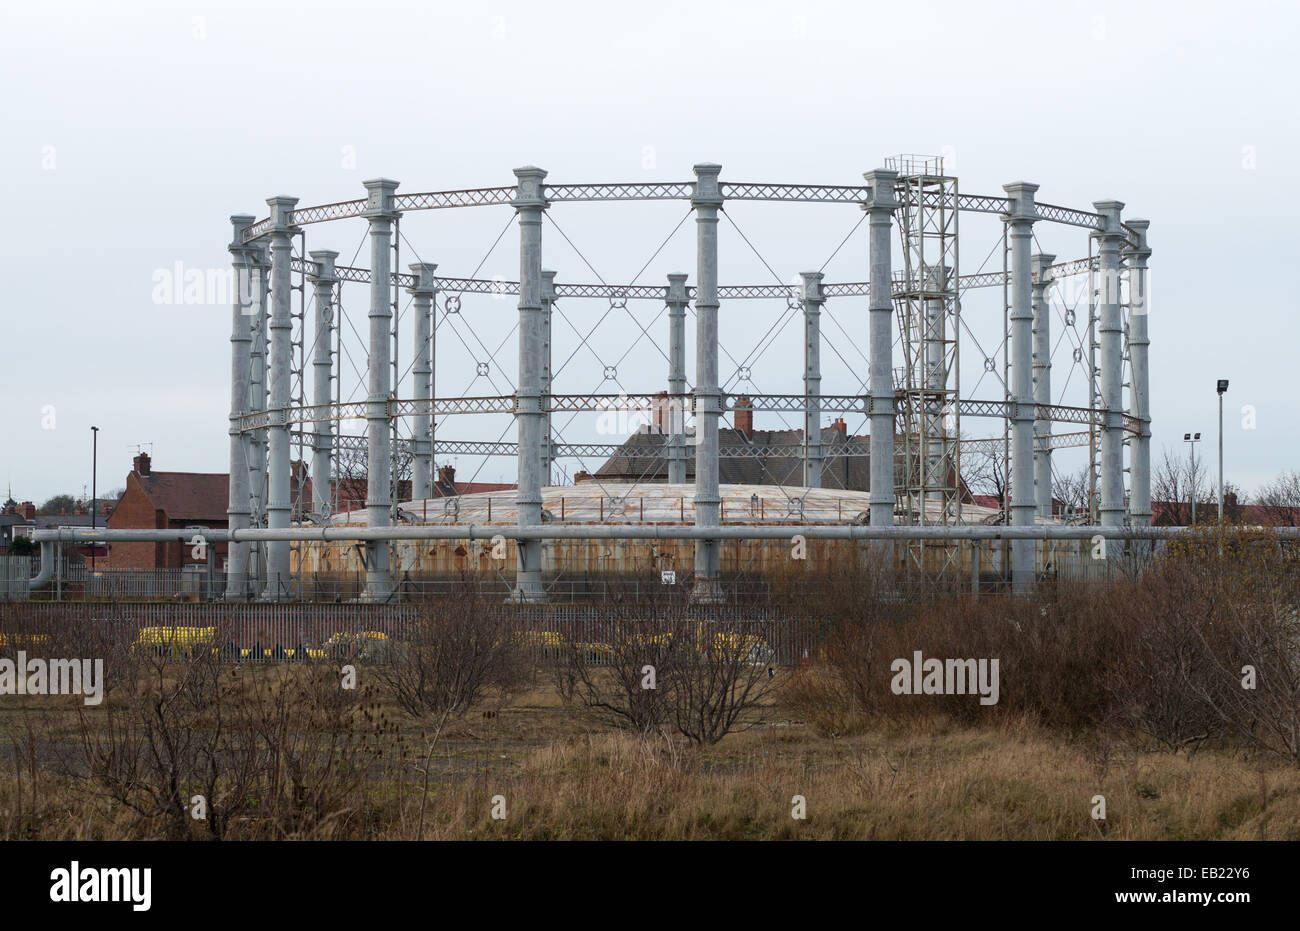 Victorian gasometer with ornate cast iron columns situated in Hendon, Sunderland, north east England UK - Stock Image